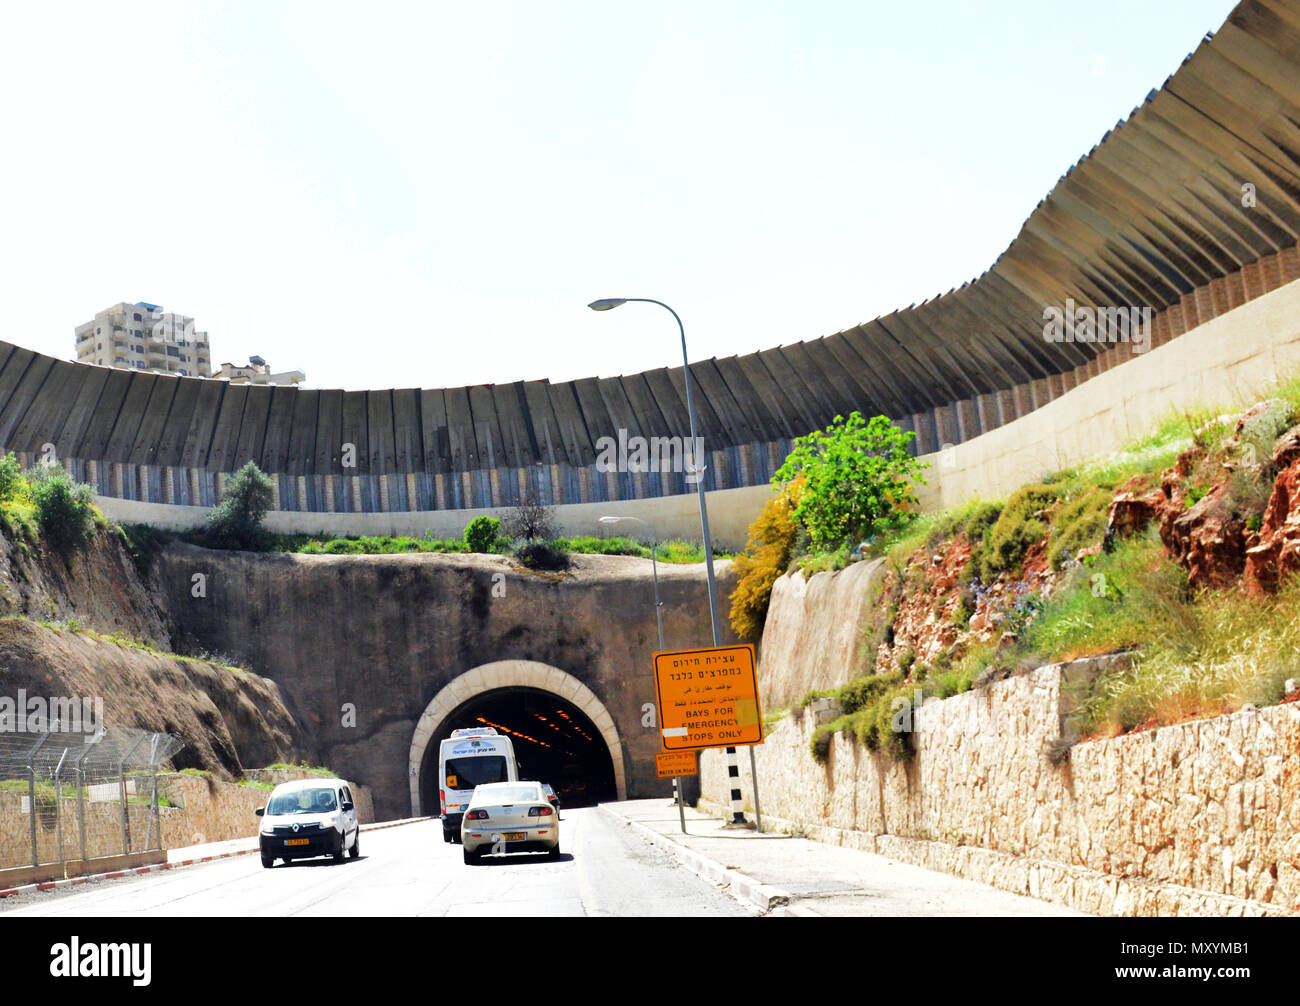 The ' Tunnel road' built by Israel with wall protection in Gush Etzion, West Bank. - Stock Image